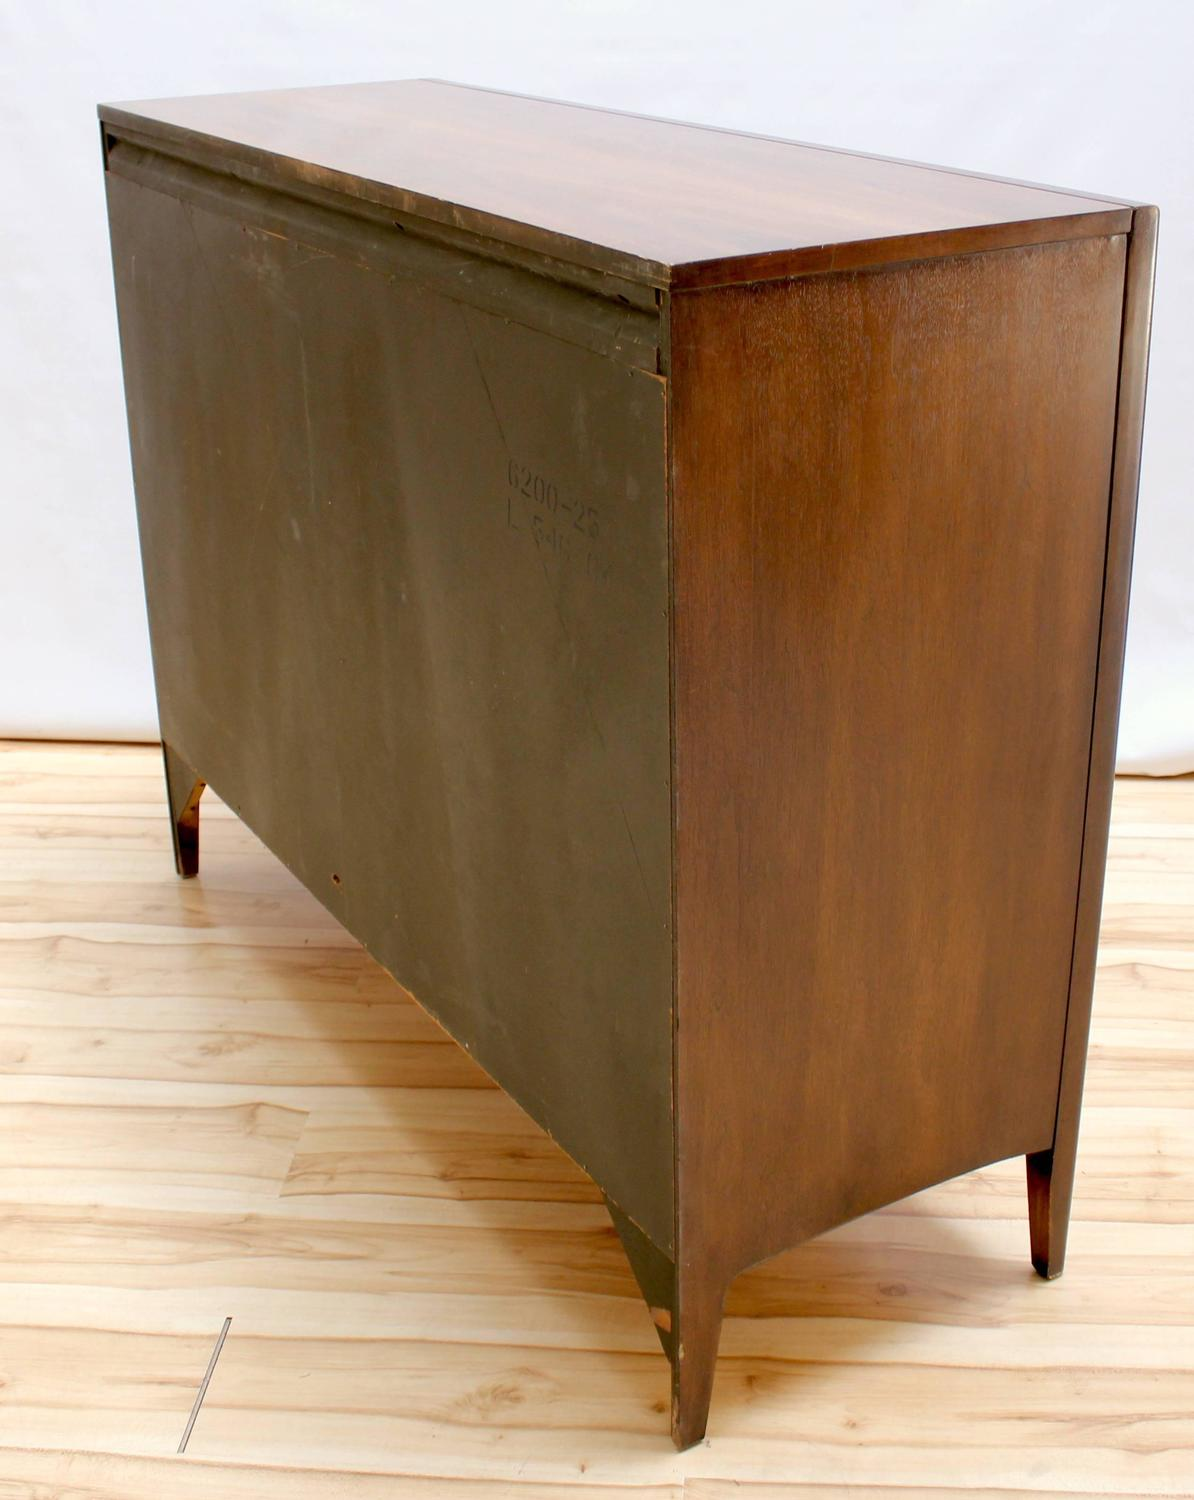 1960s broyhill emphasis walnut magna dresser at 1stdibs